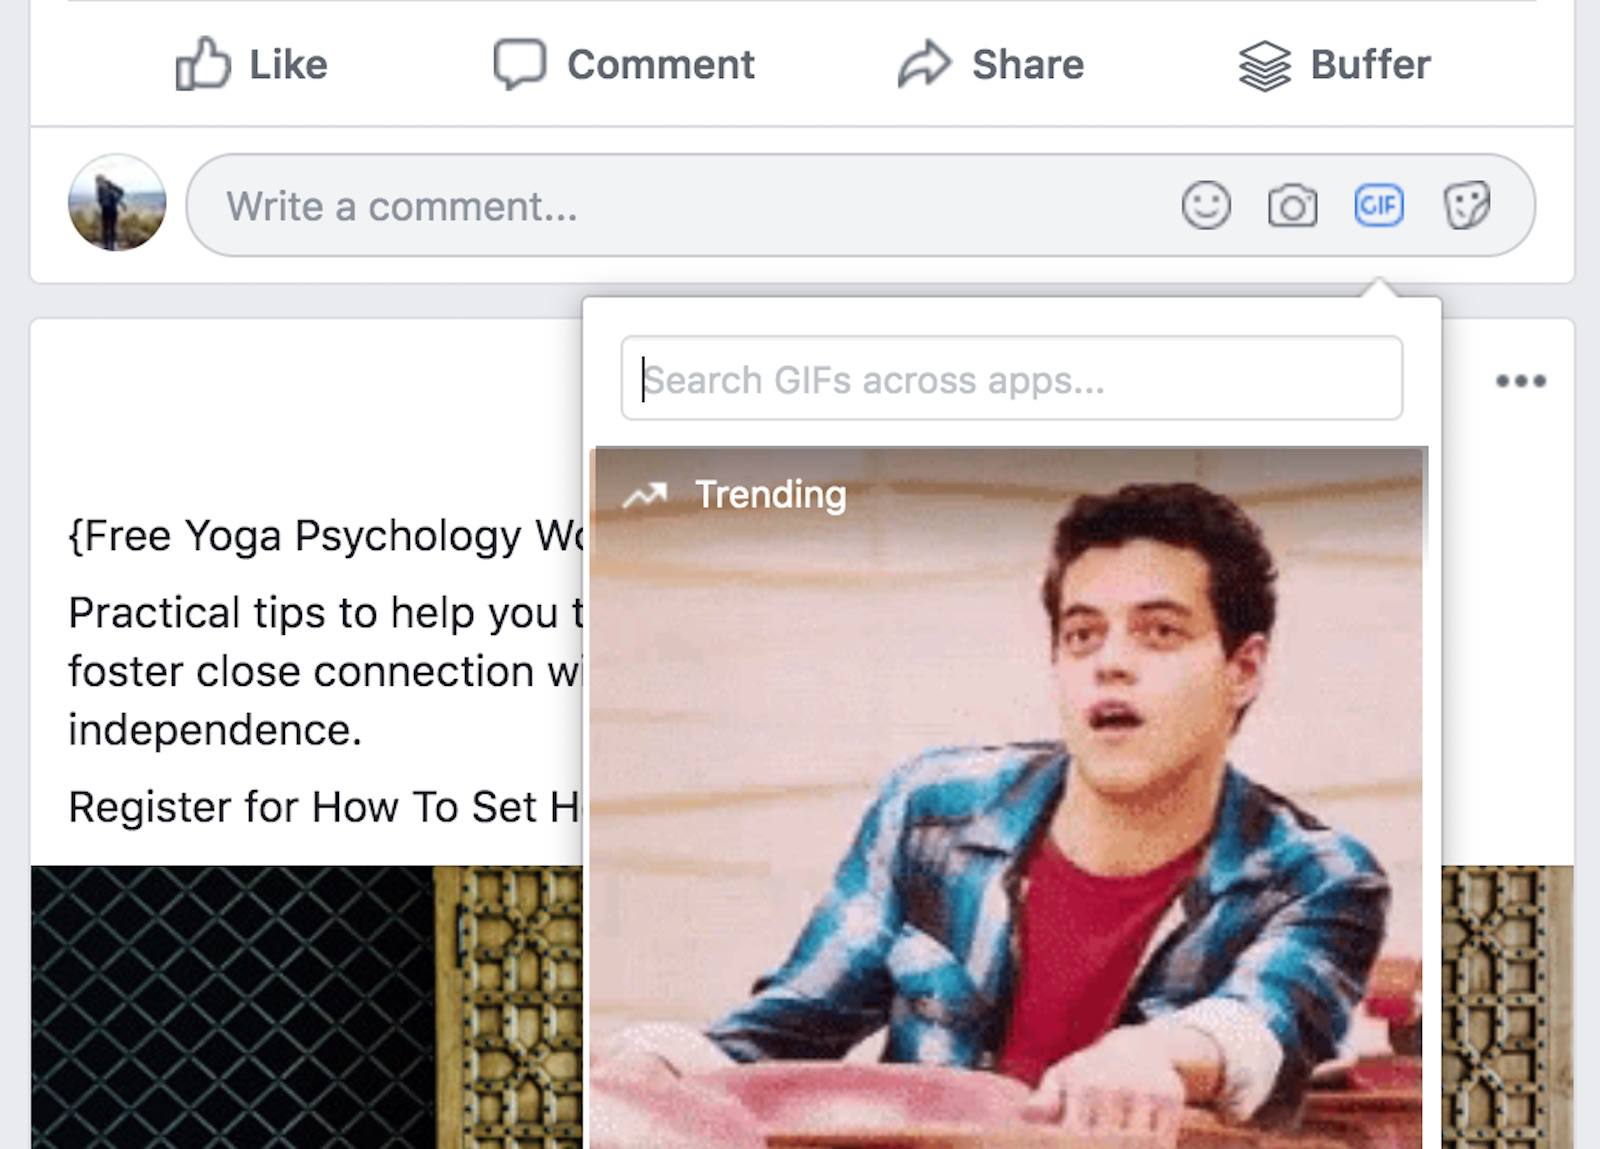 Searching GIFs on Facebook.com.